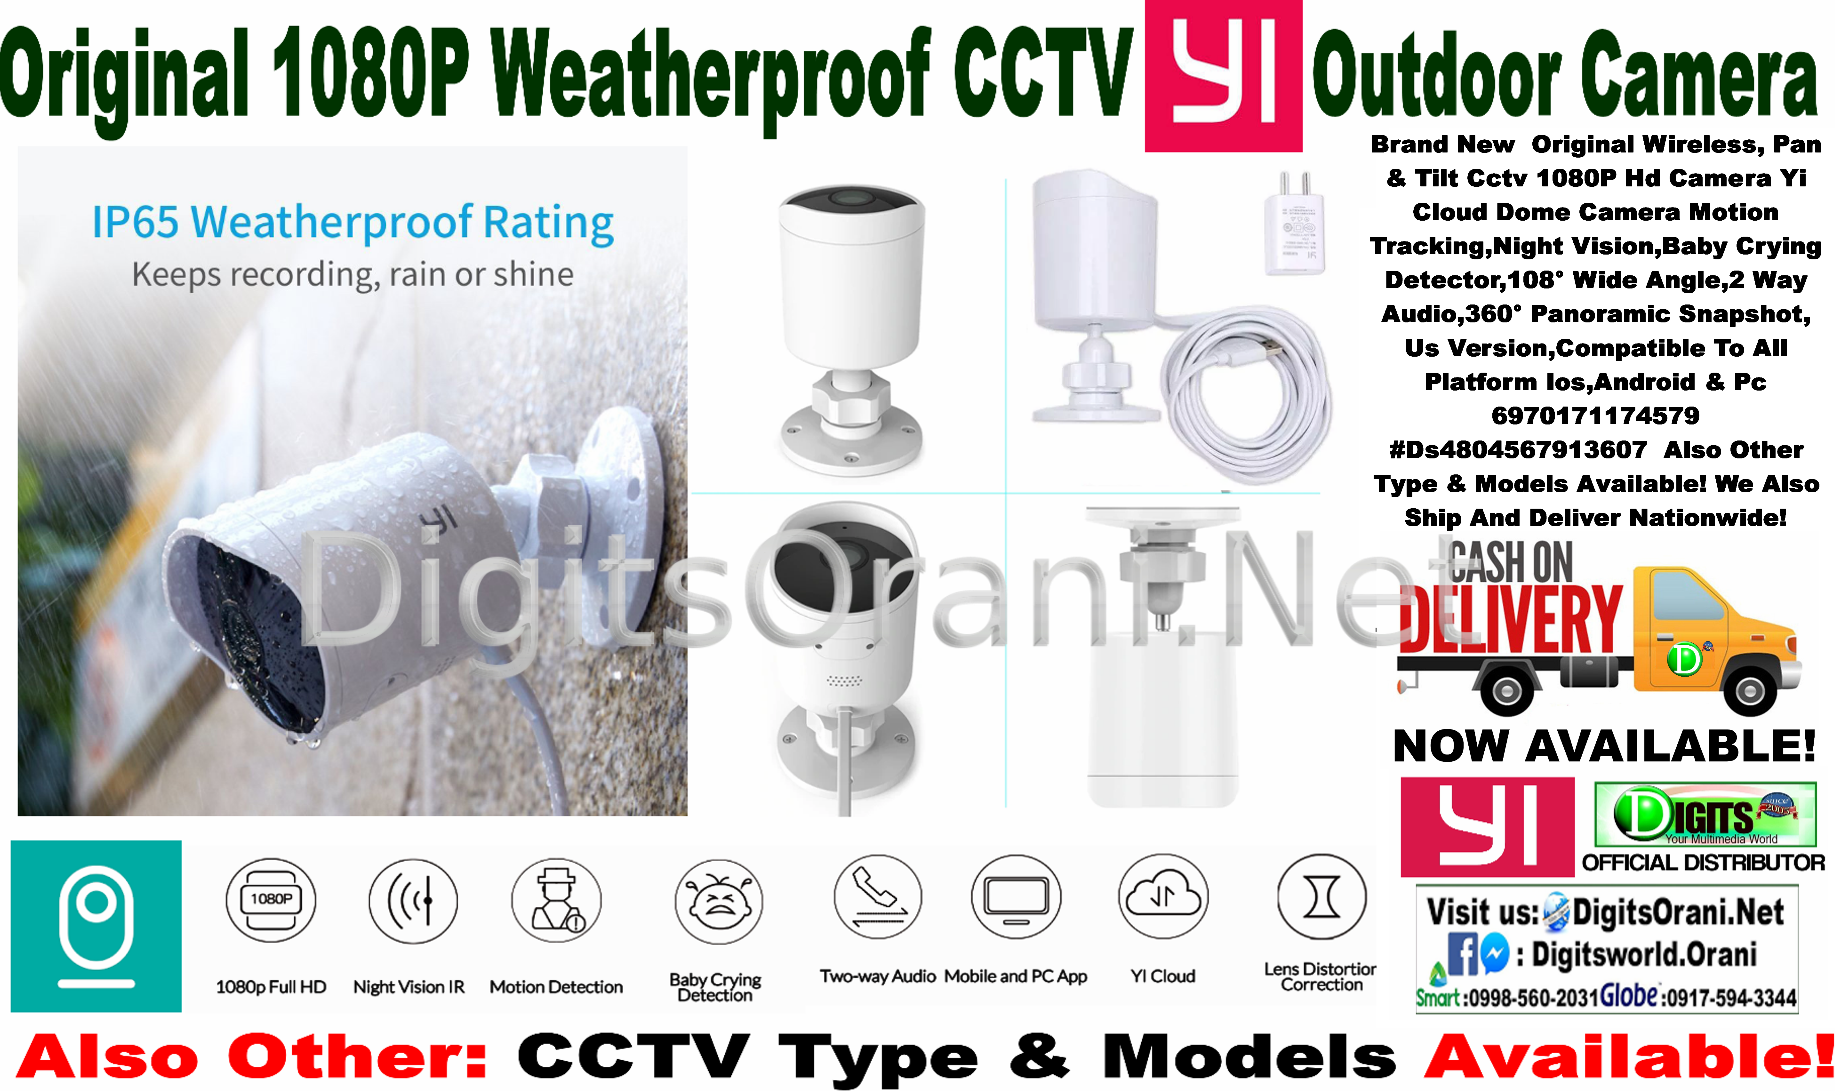 Original 1080P Weatherproof Cctv Yi Outdoor Camera Ir Night  Vision,Detterent Alarm,Yi Cloud,Two Way Talk,Mobile Access,Wifi  Connected,3M Power